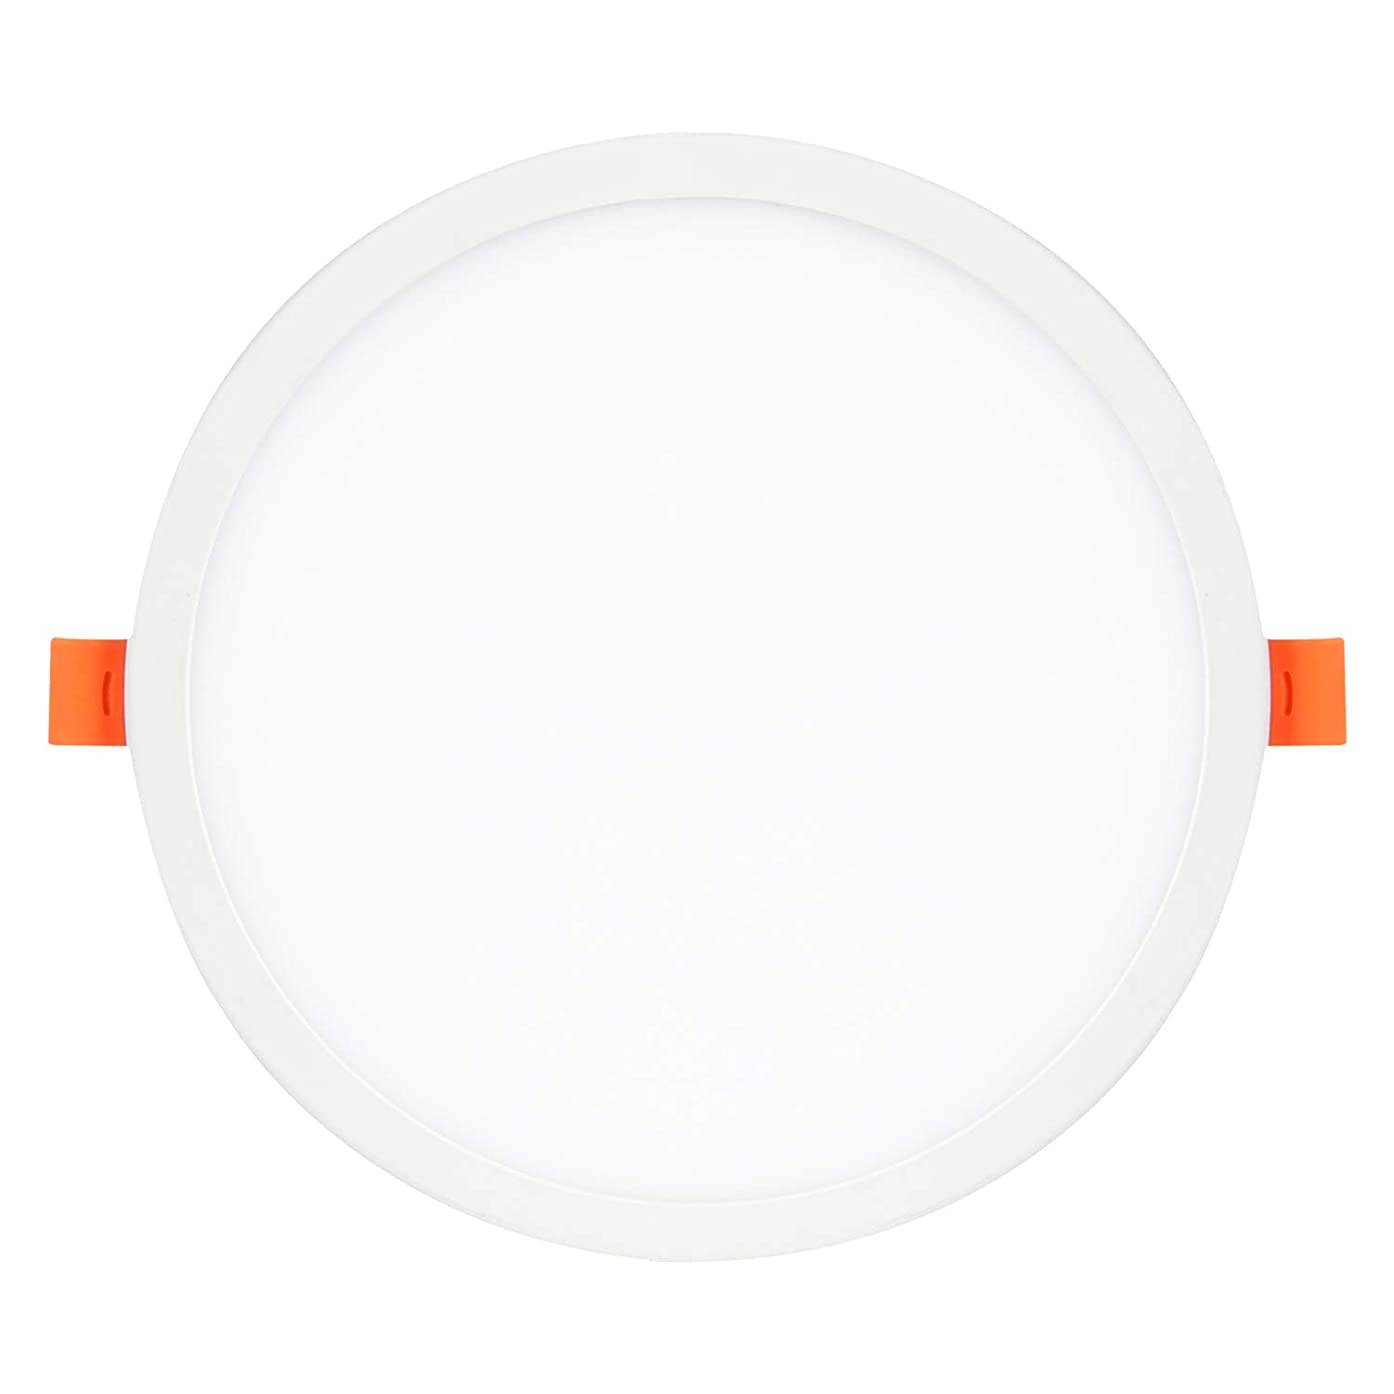 6 Inch LED Downlight, 15W Adjustable Cut Hole Diameter 2